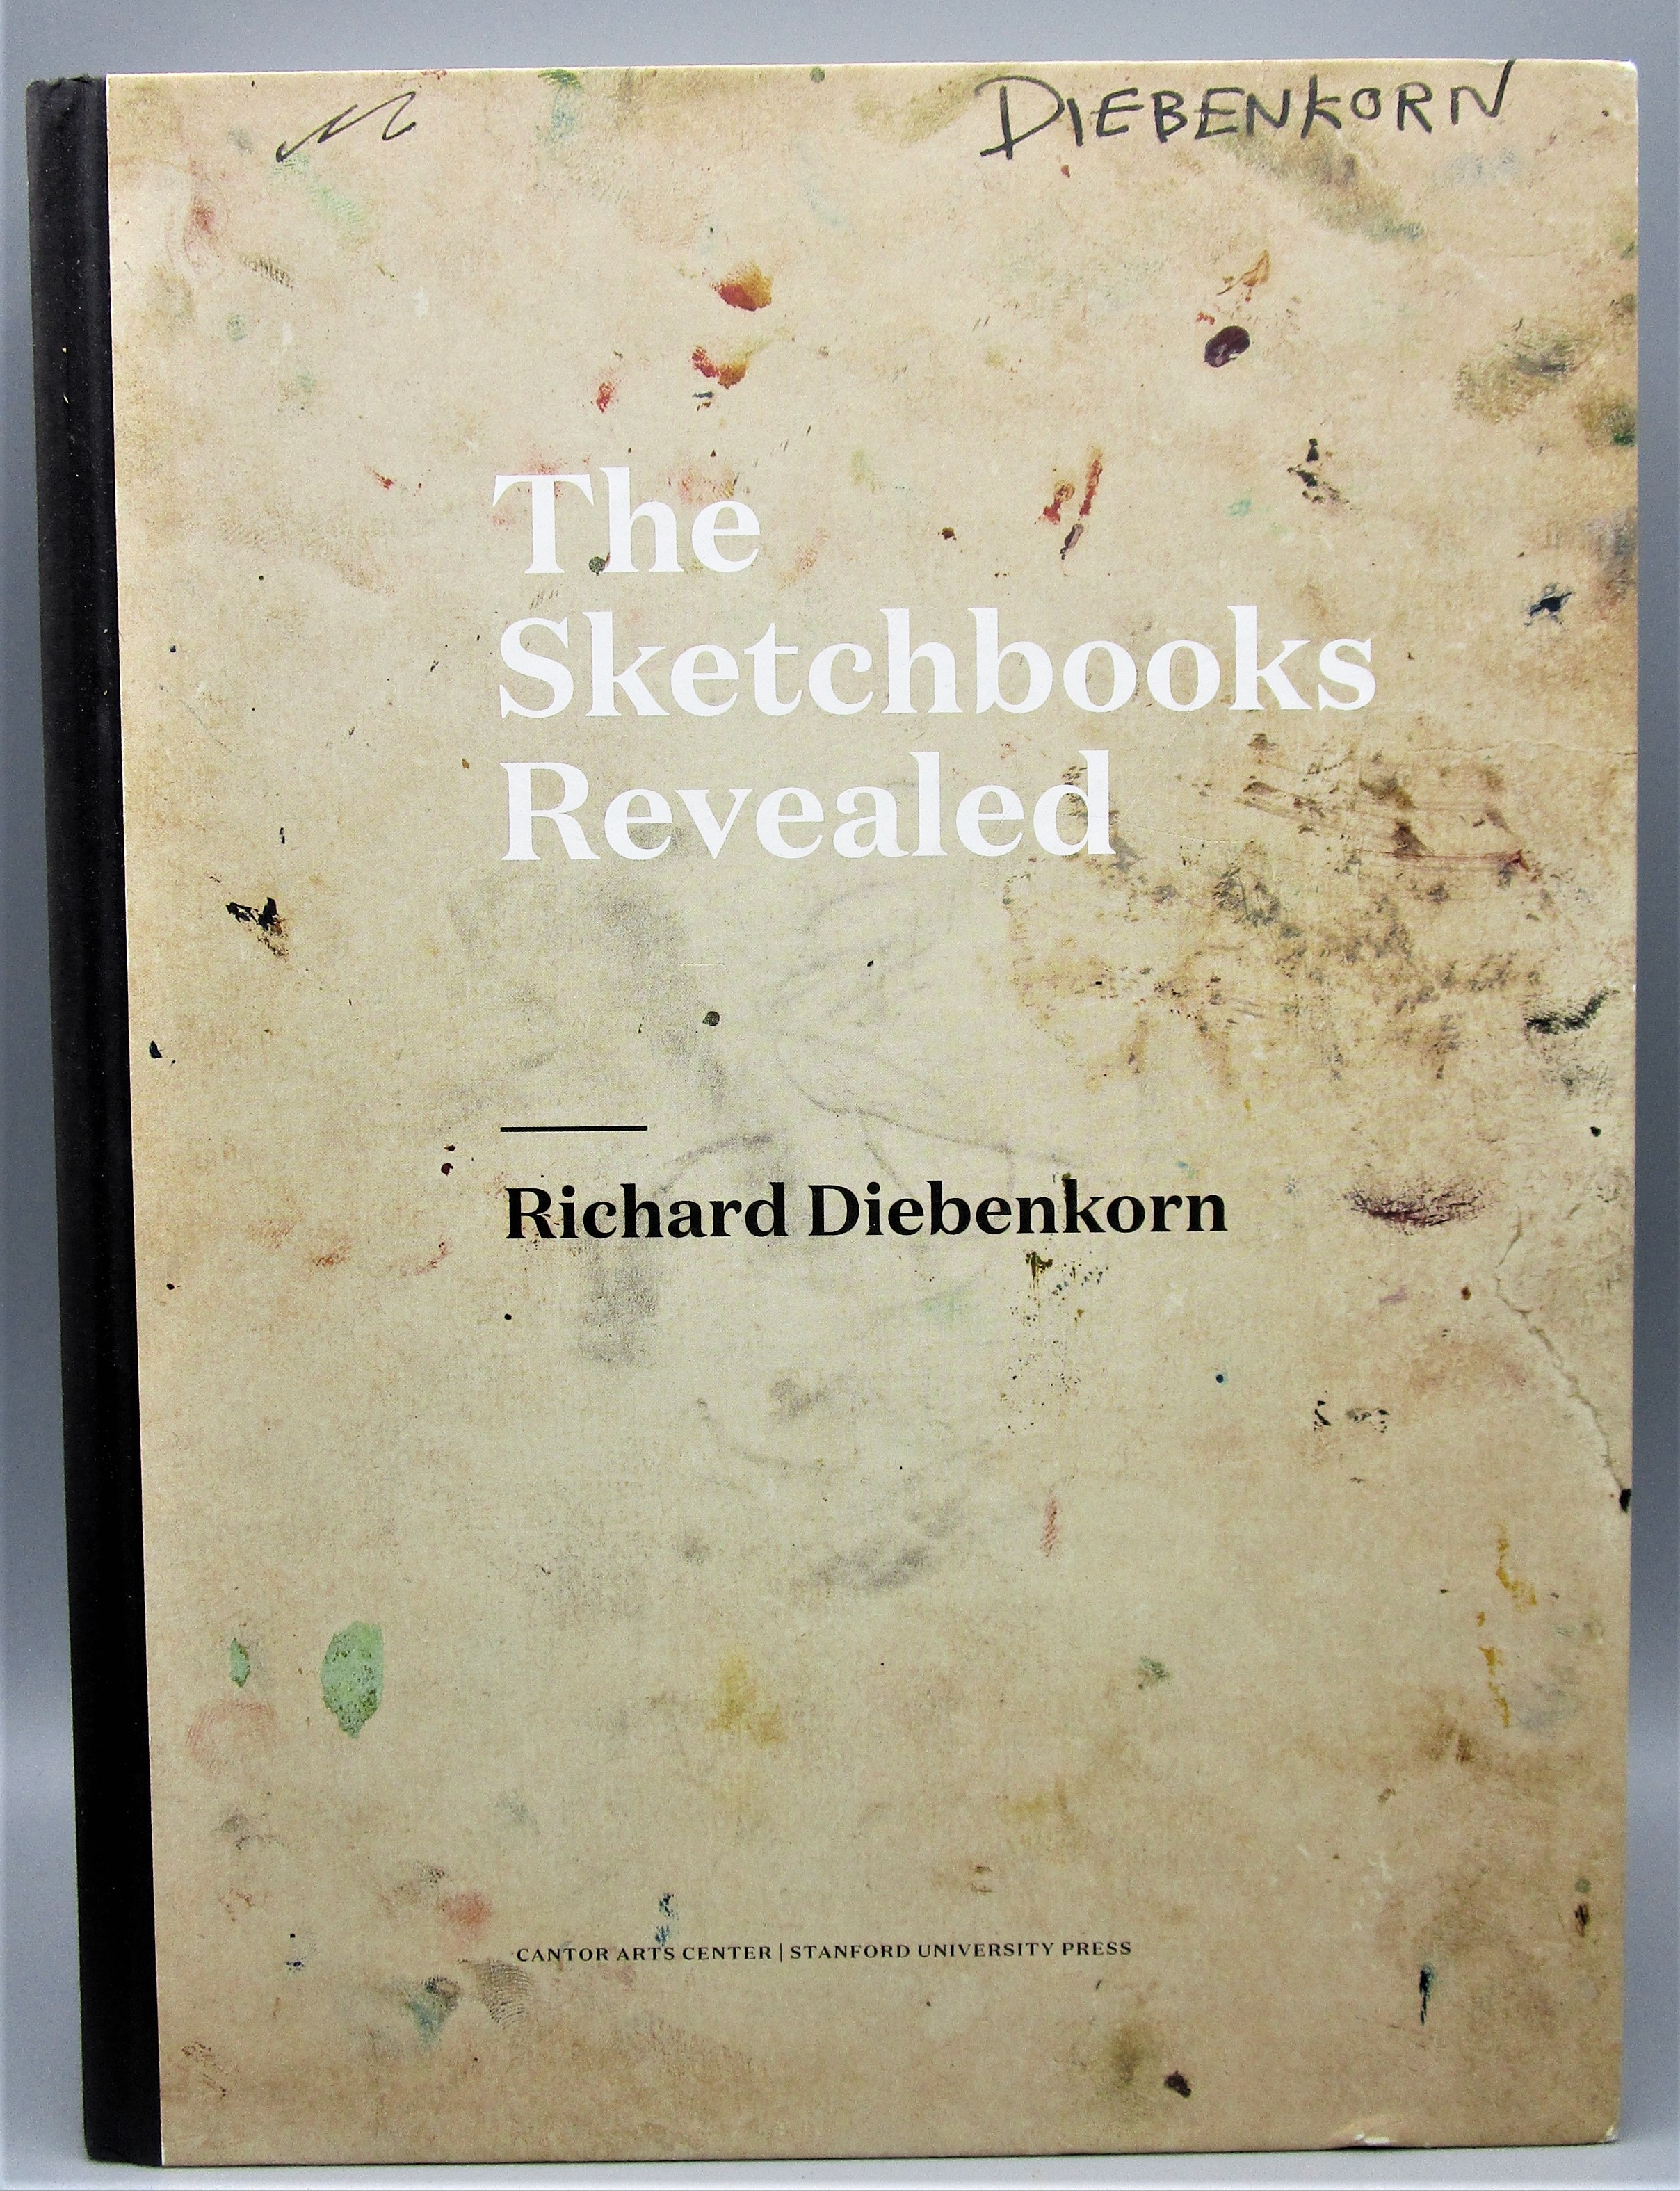 RICHARD DIEBENKORN: THE SKETCHBOOKS REVEALED - 2015 [1st Ed]